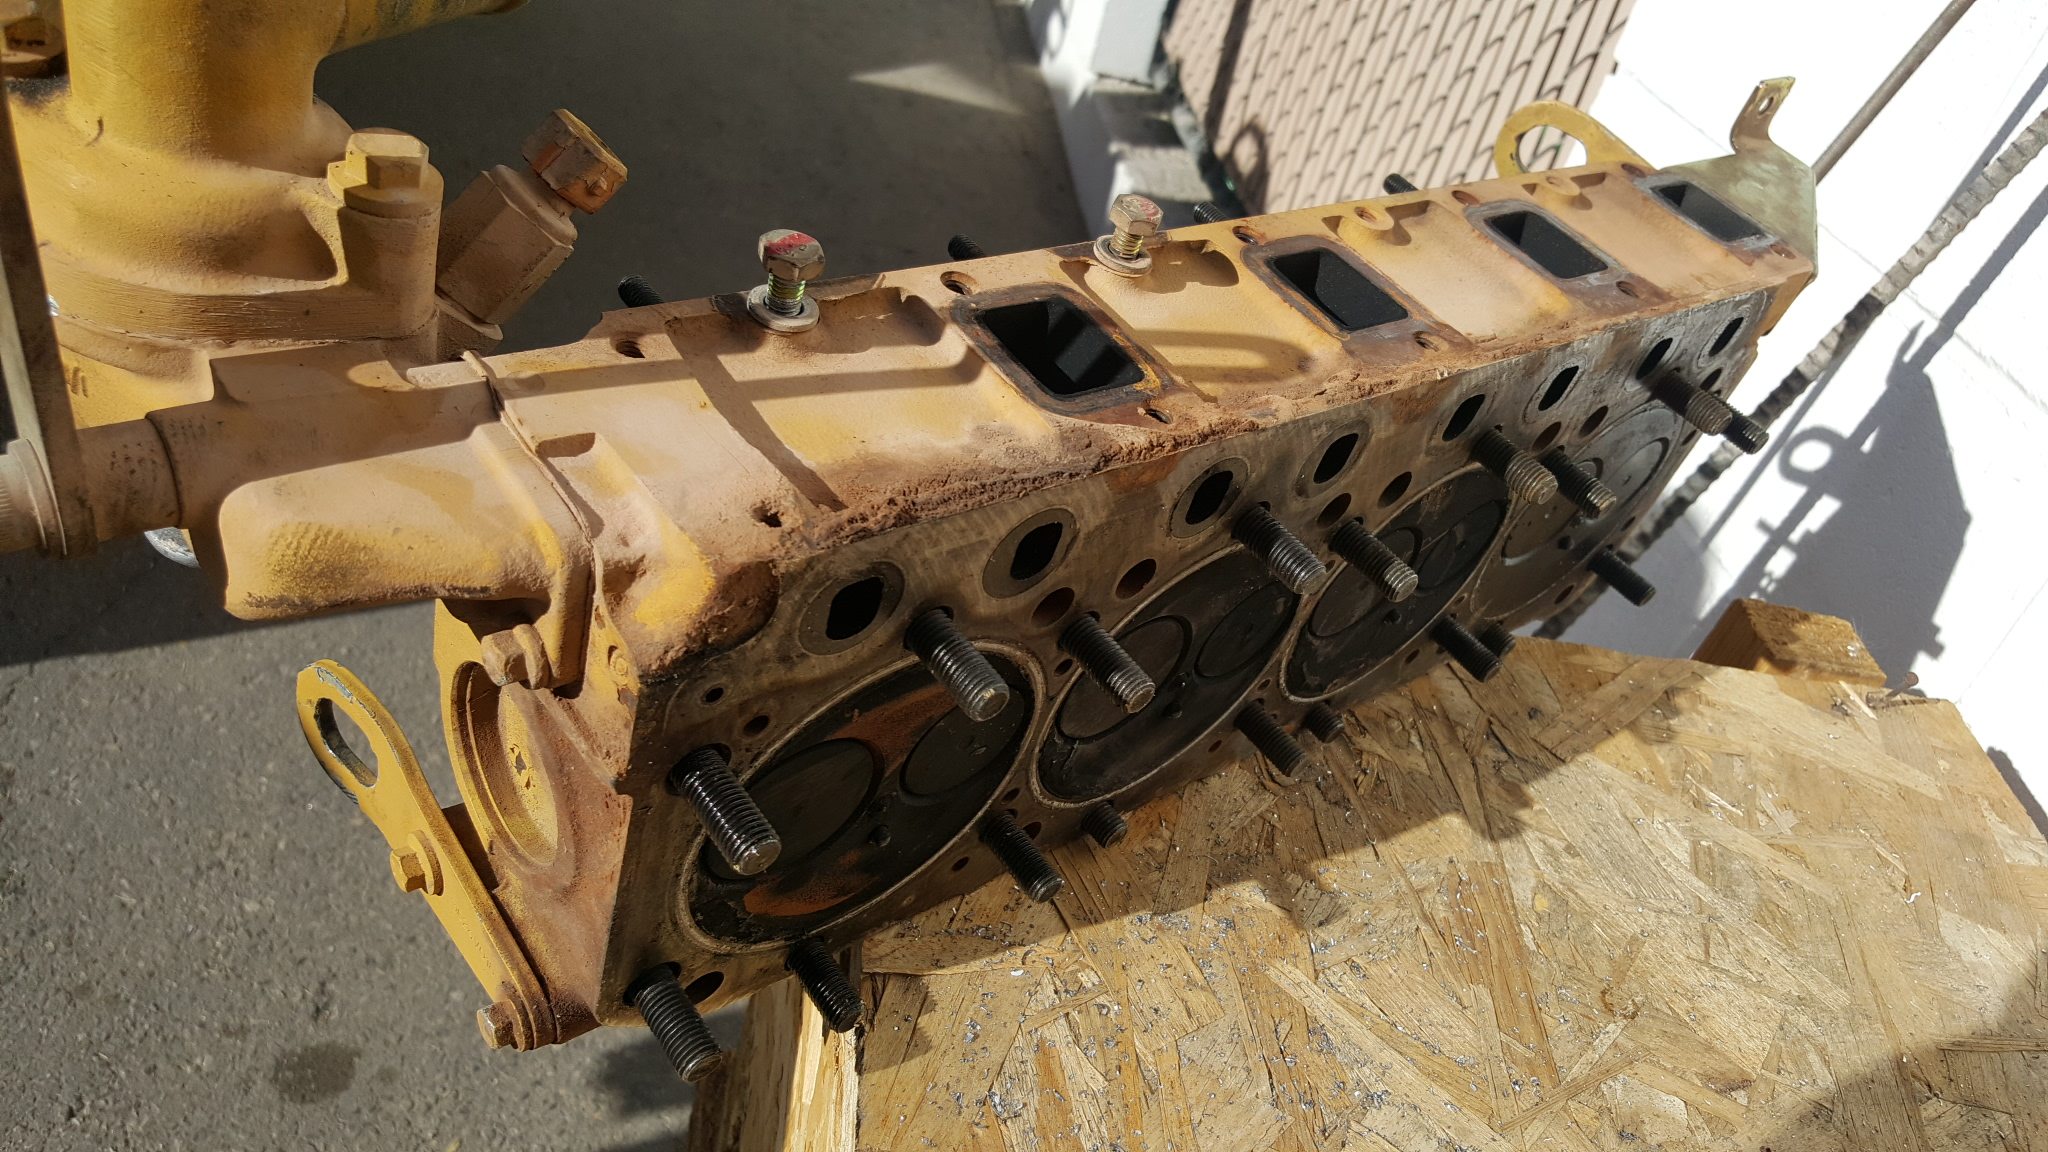 Caterpillar 3034 Perkins 29 Liter Diesel Cylinder Head Valve Job Cat Engine Diagram V8 This Is A That Off Of An Also Sold Used Under As The Kicked Connecting Out